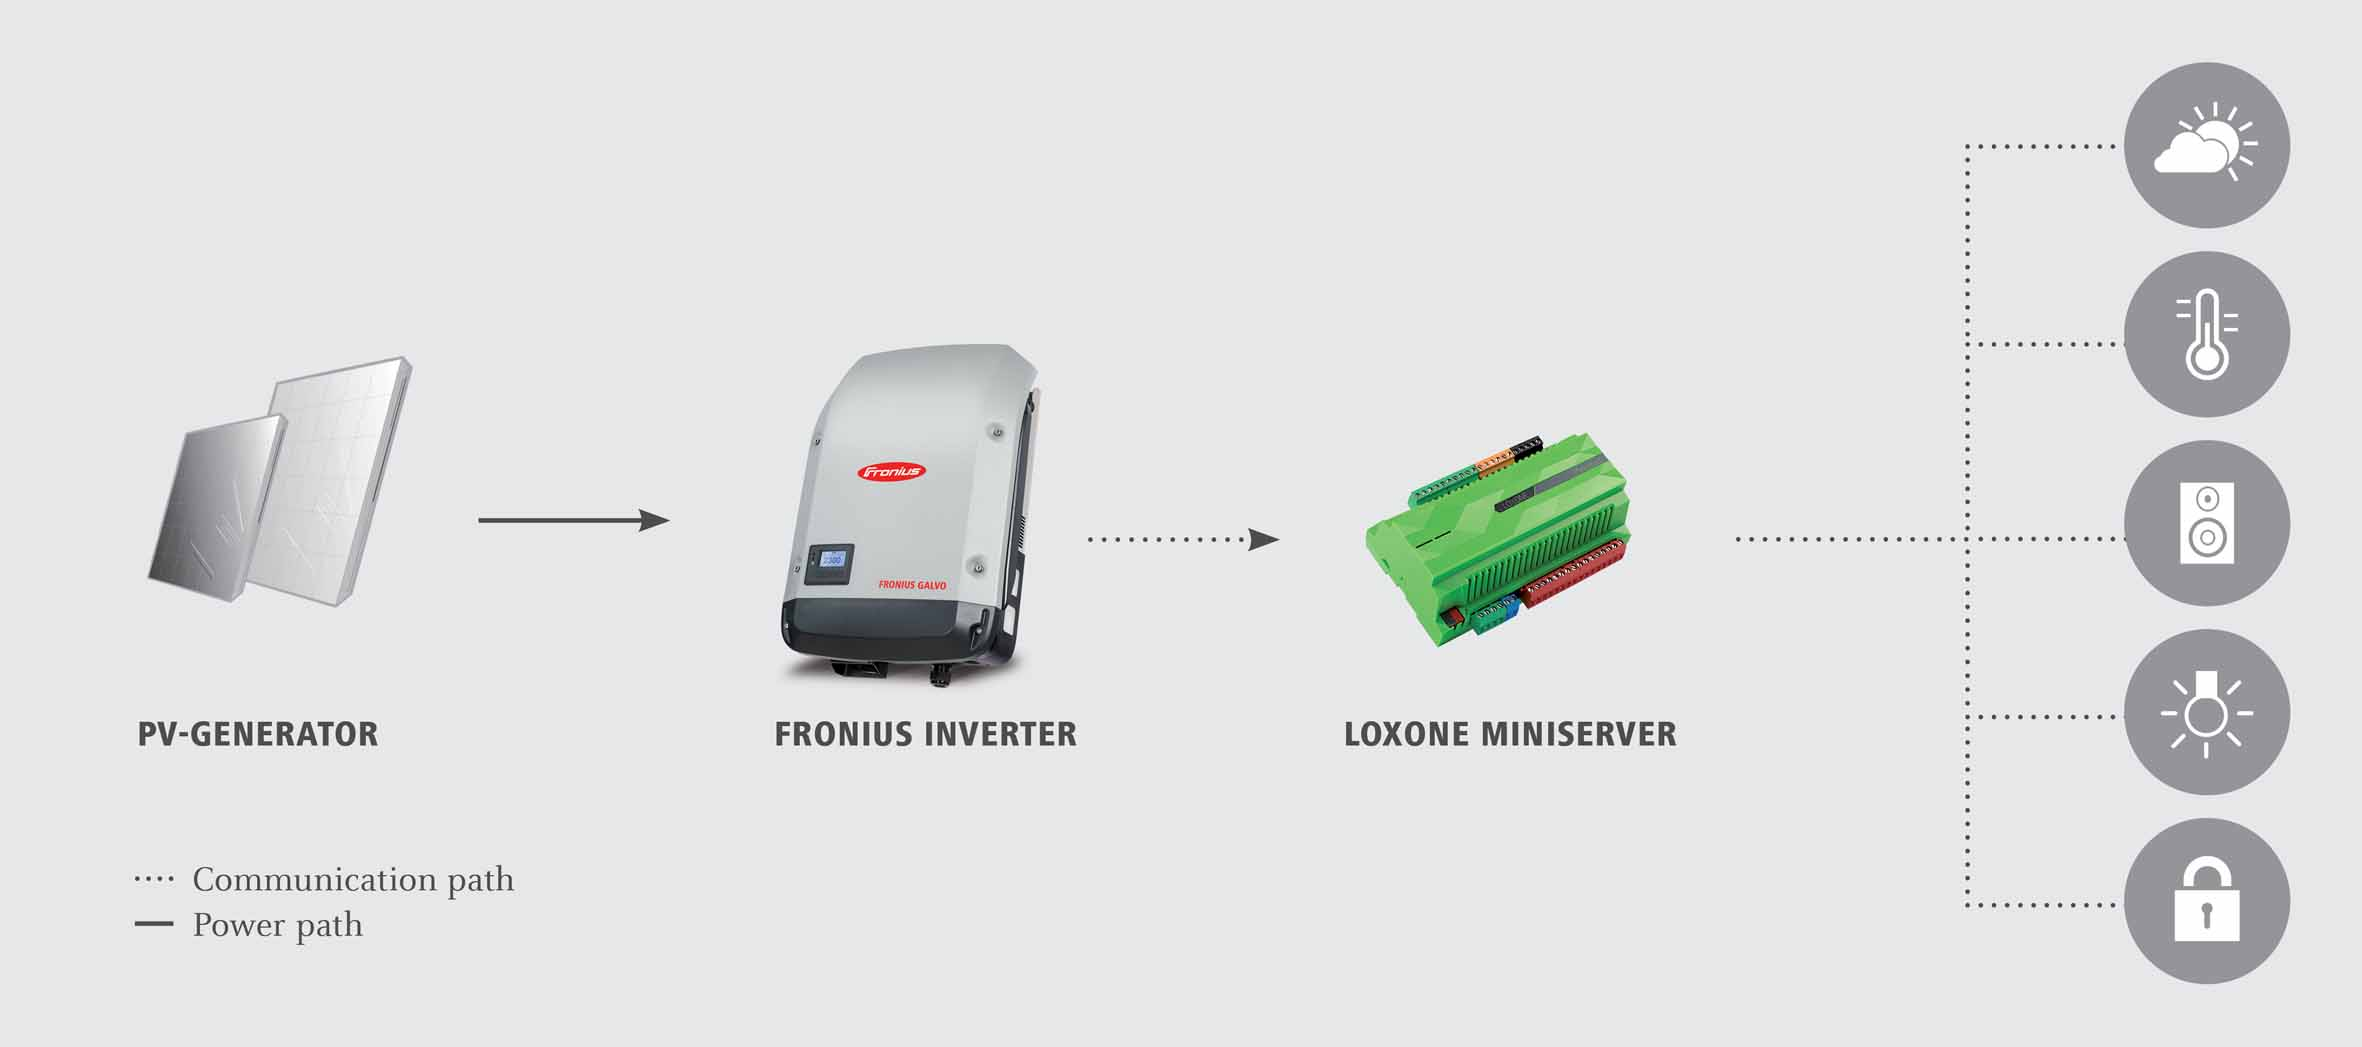 Solar Energy Monitoring System : Solar energy monitoring with fronius and loxone